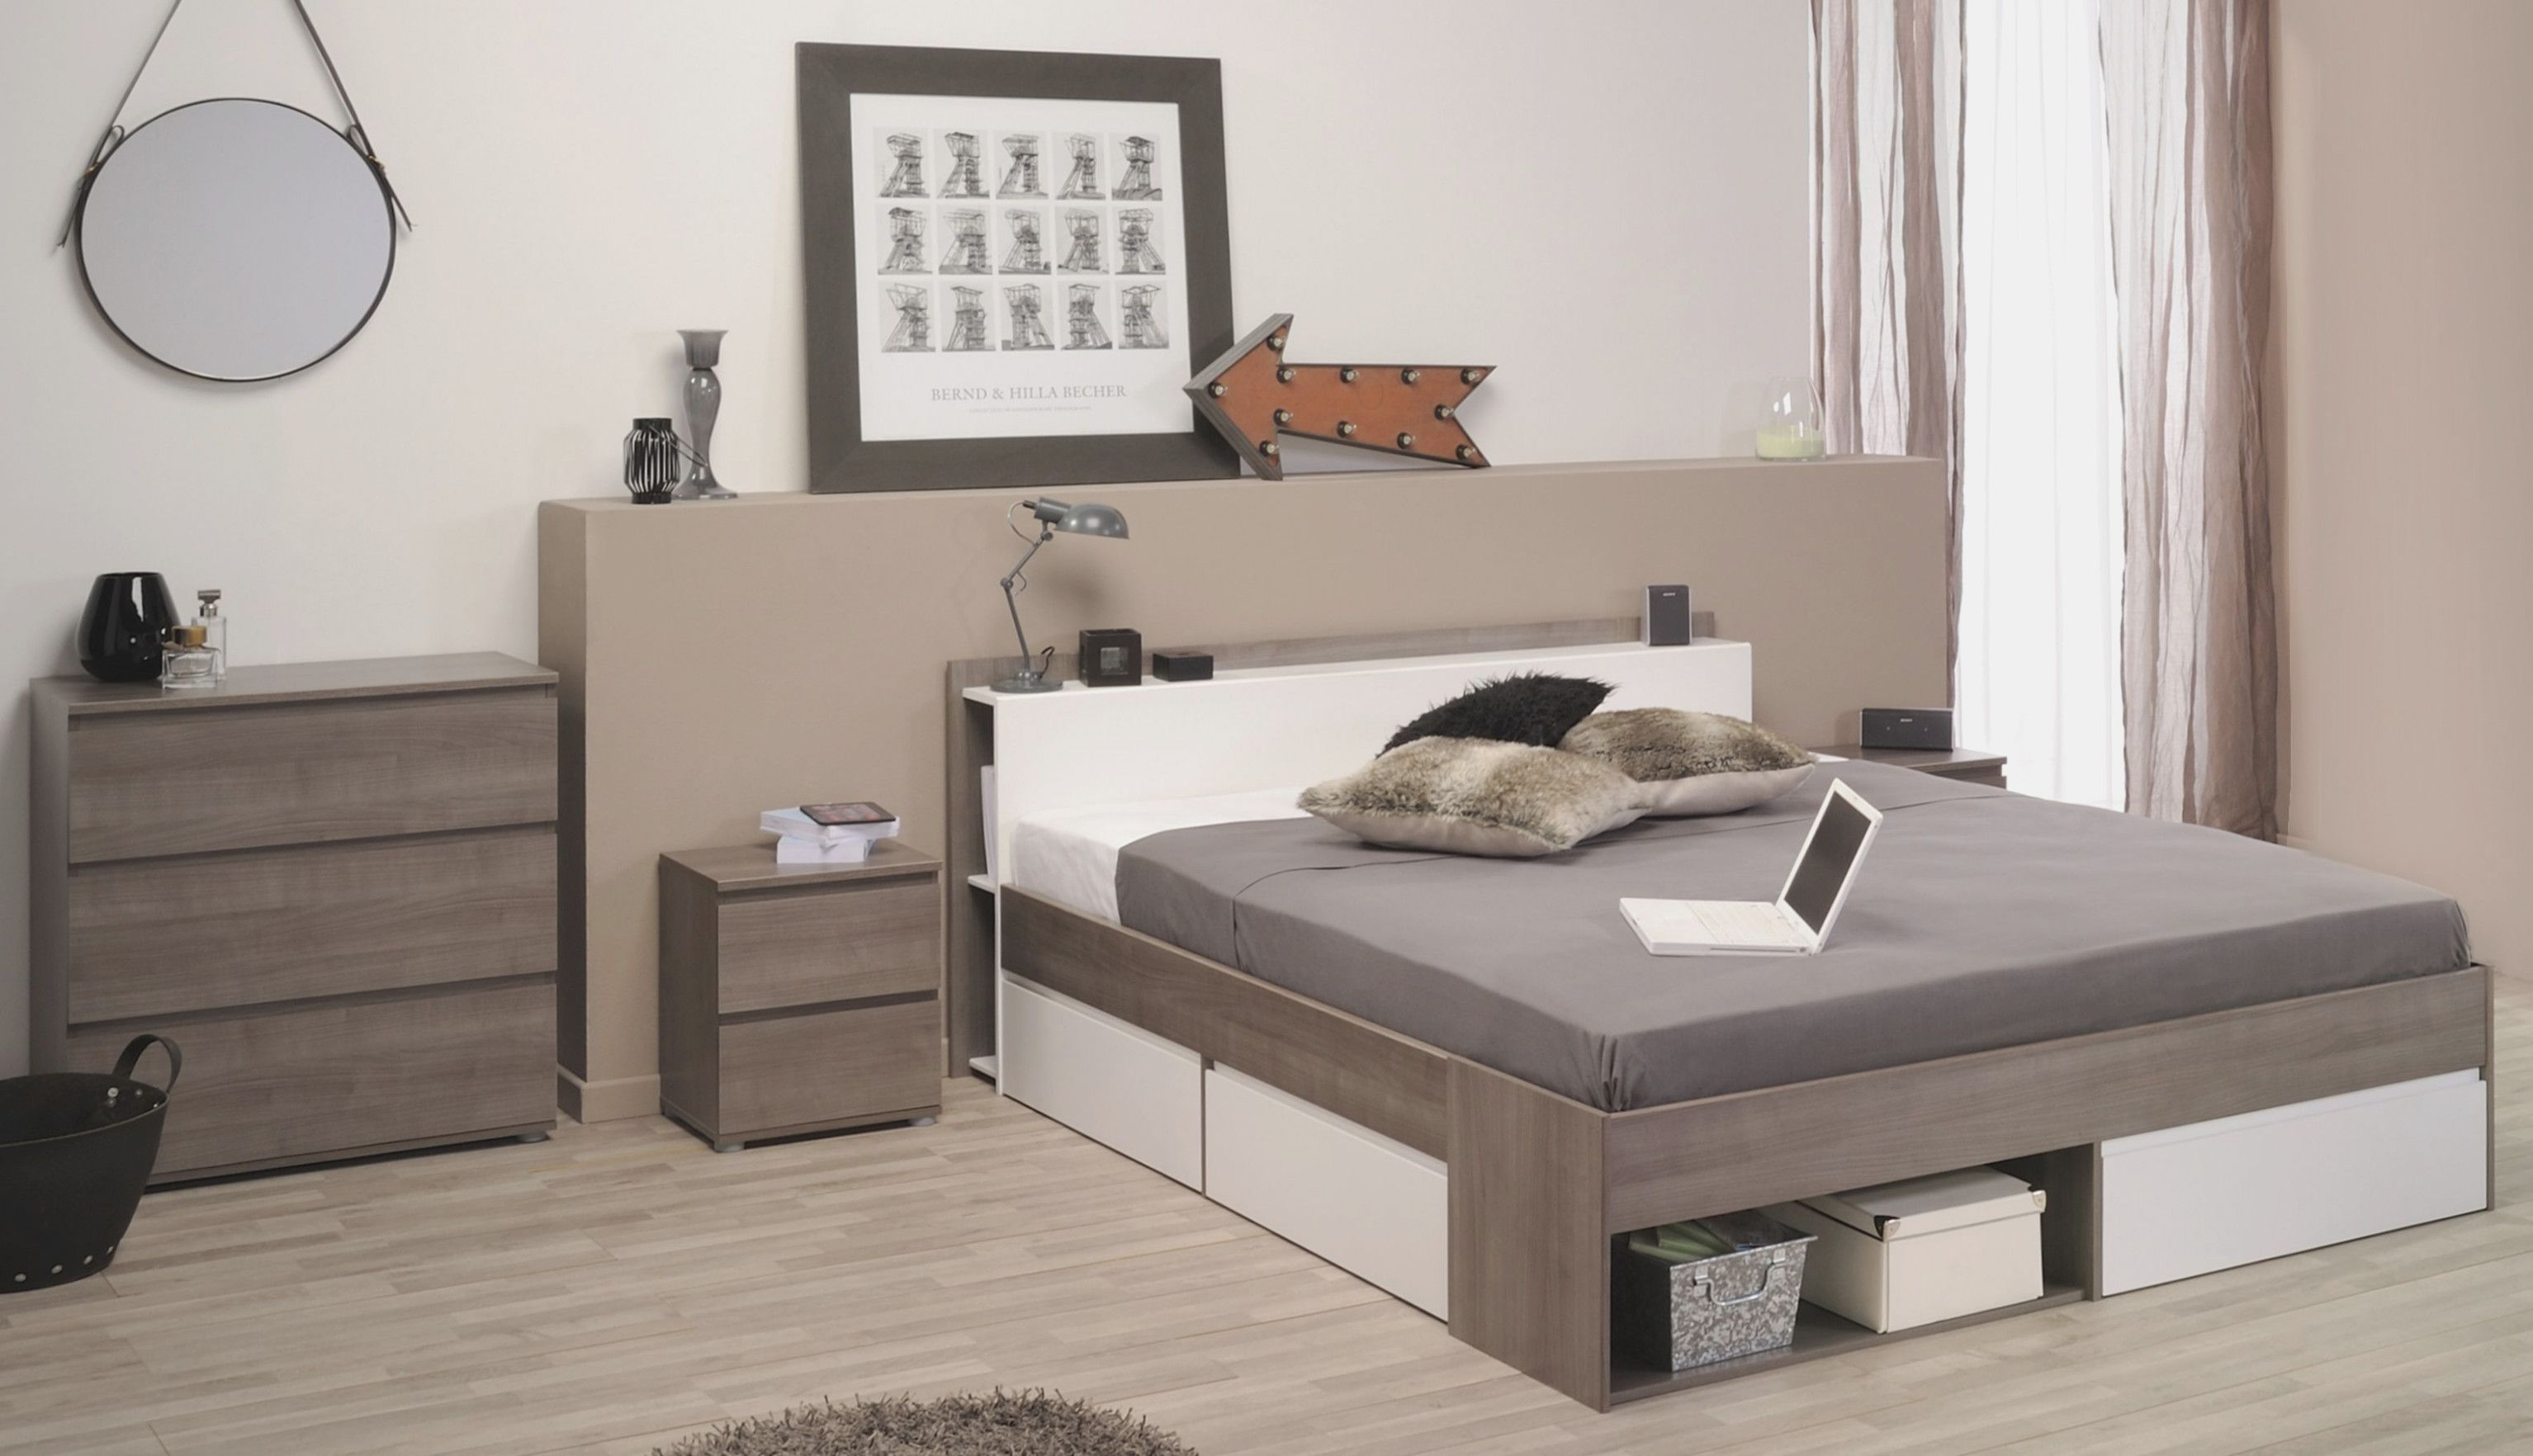 Komplett Schlafzimmer Bett 160 Cm in 2019 Bedroom, Bed